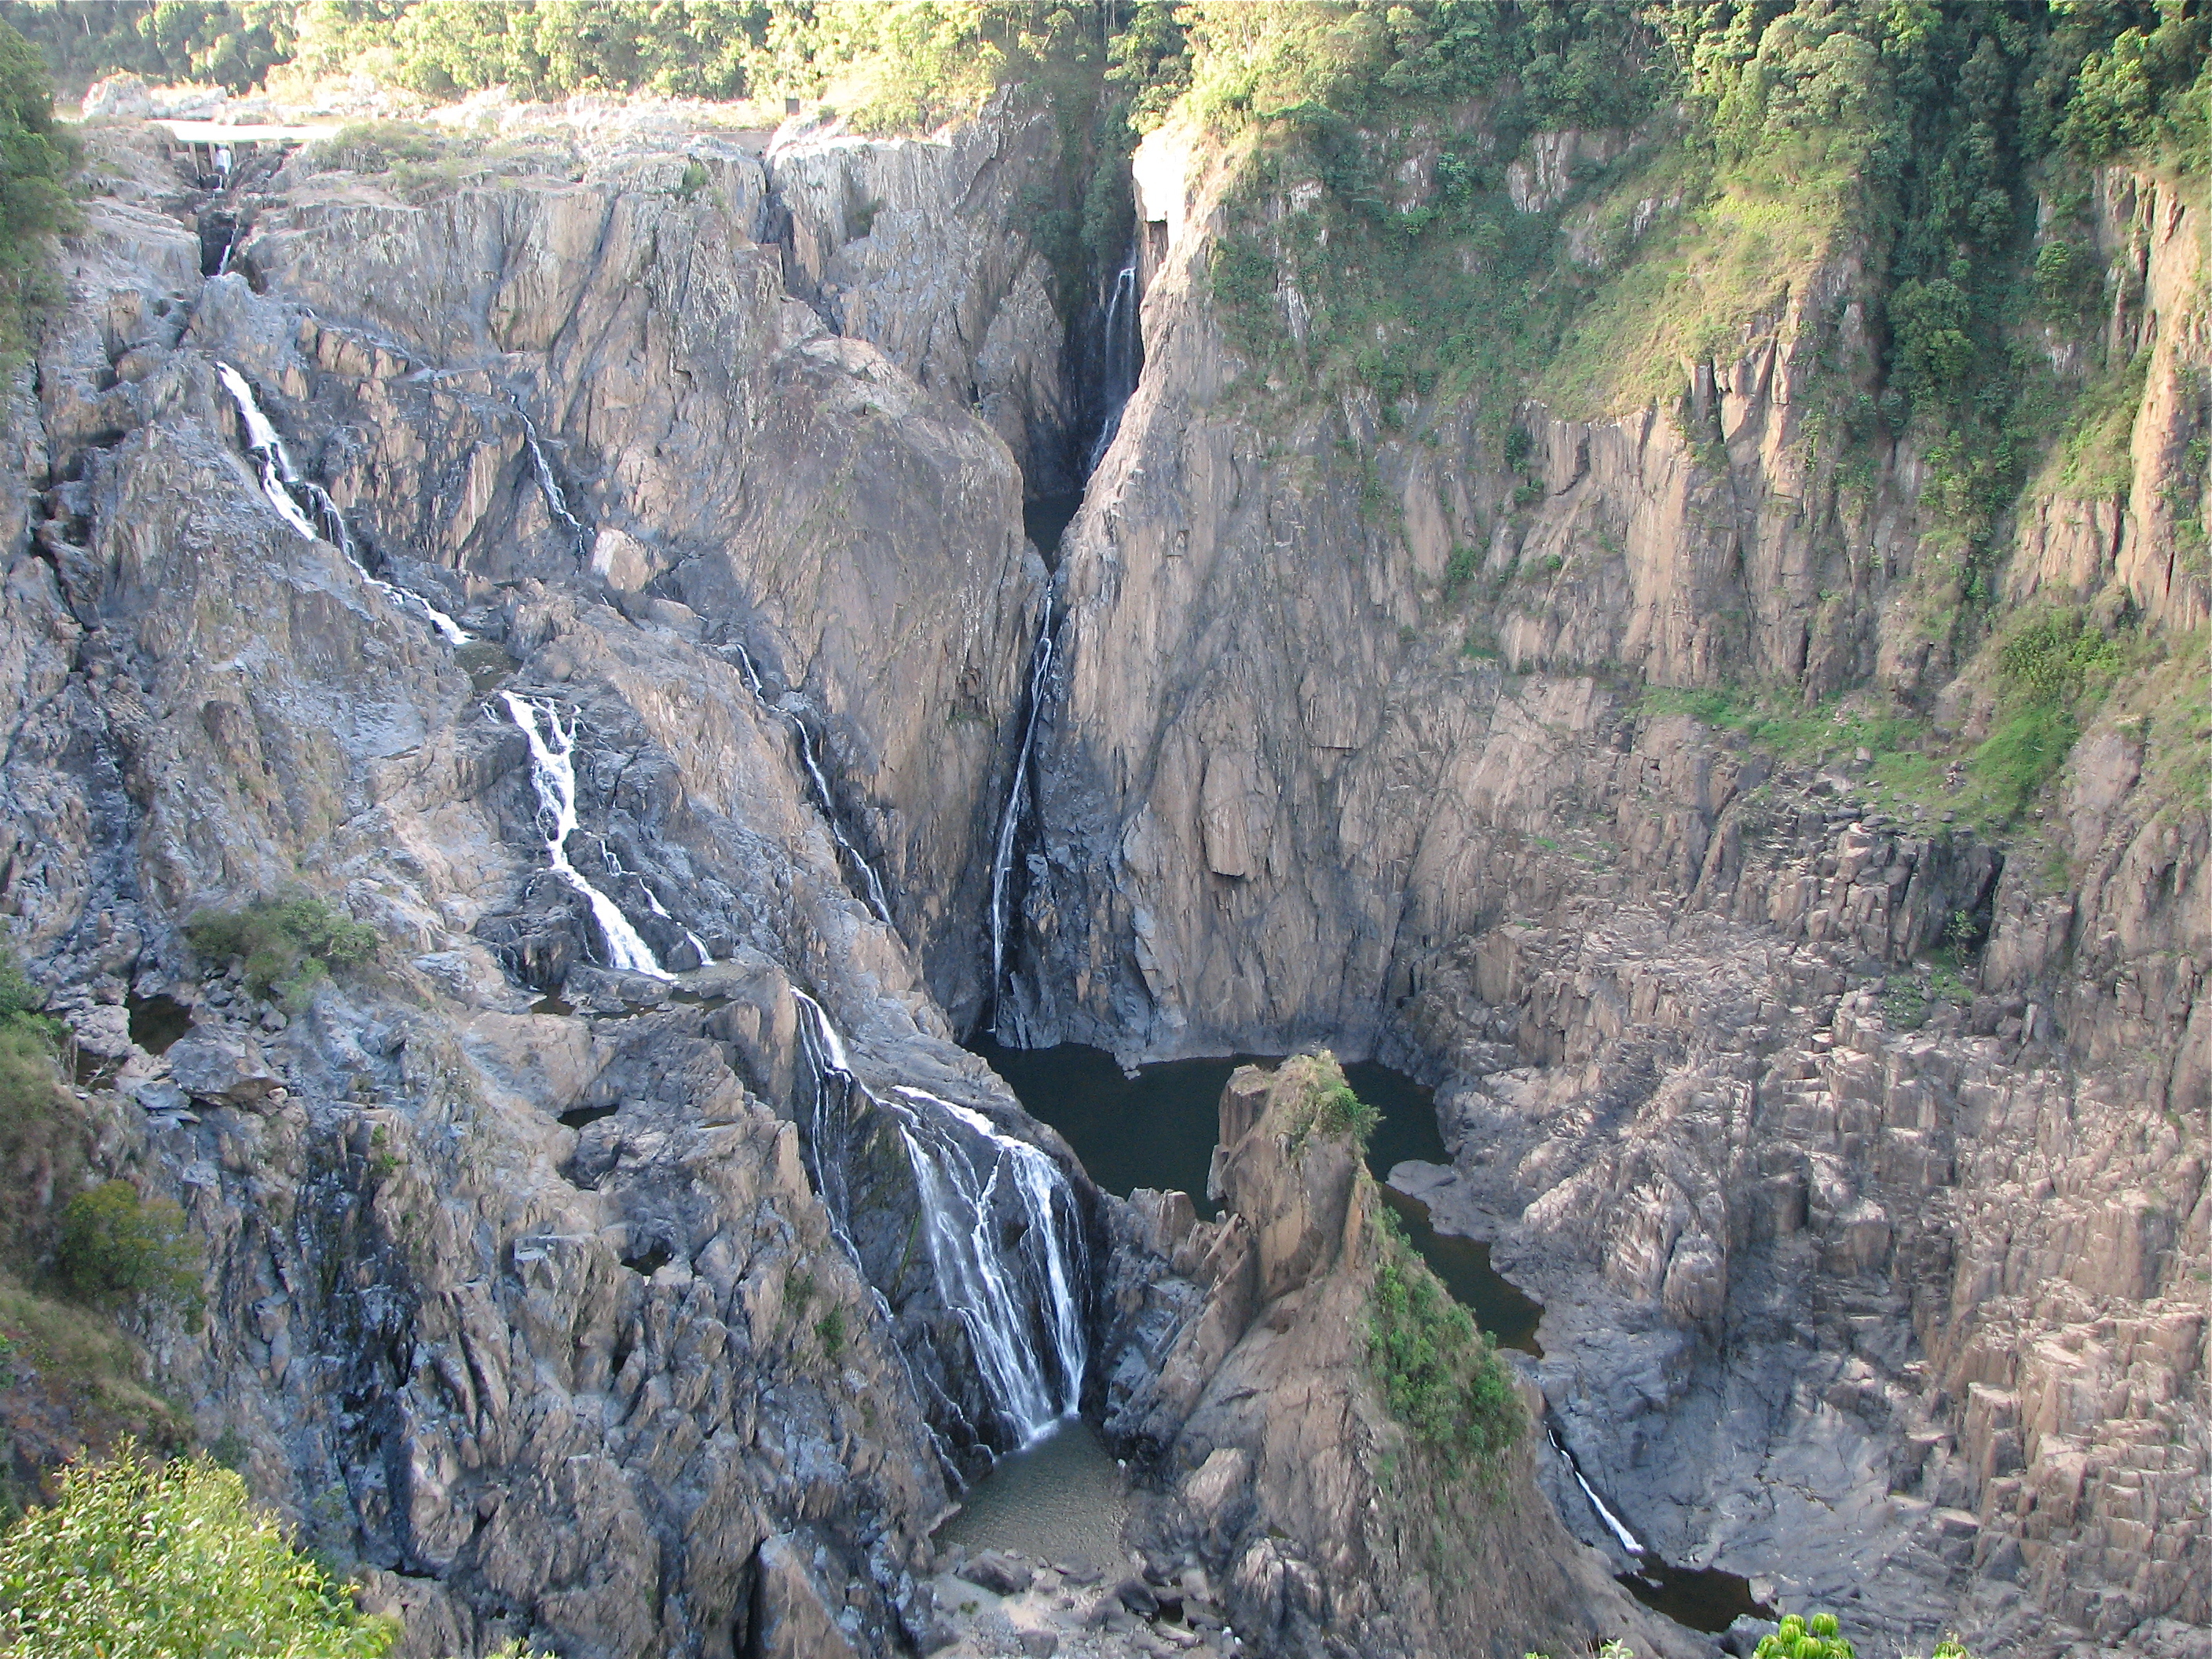 Barron Falls Wide Shot - Barron Gorge National Park